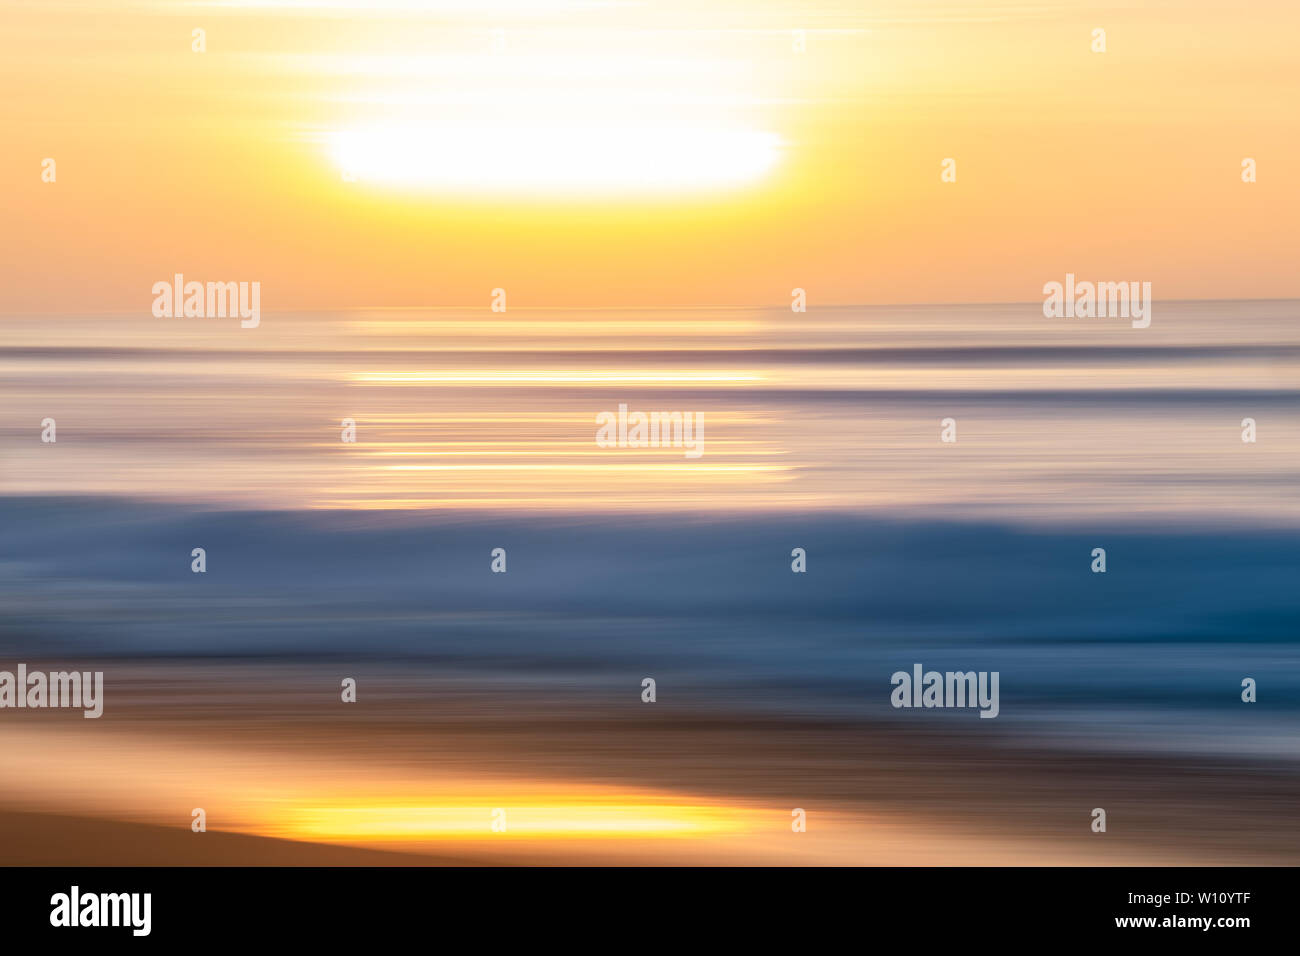 Sunset Over The Sea. Abstract Seascape Background. Water Surface and Sun Reflection - Stock Image